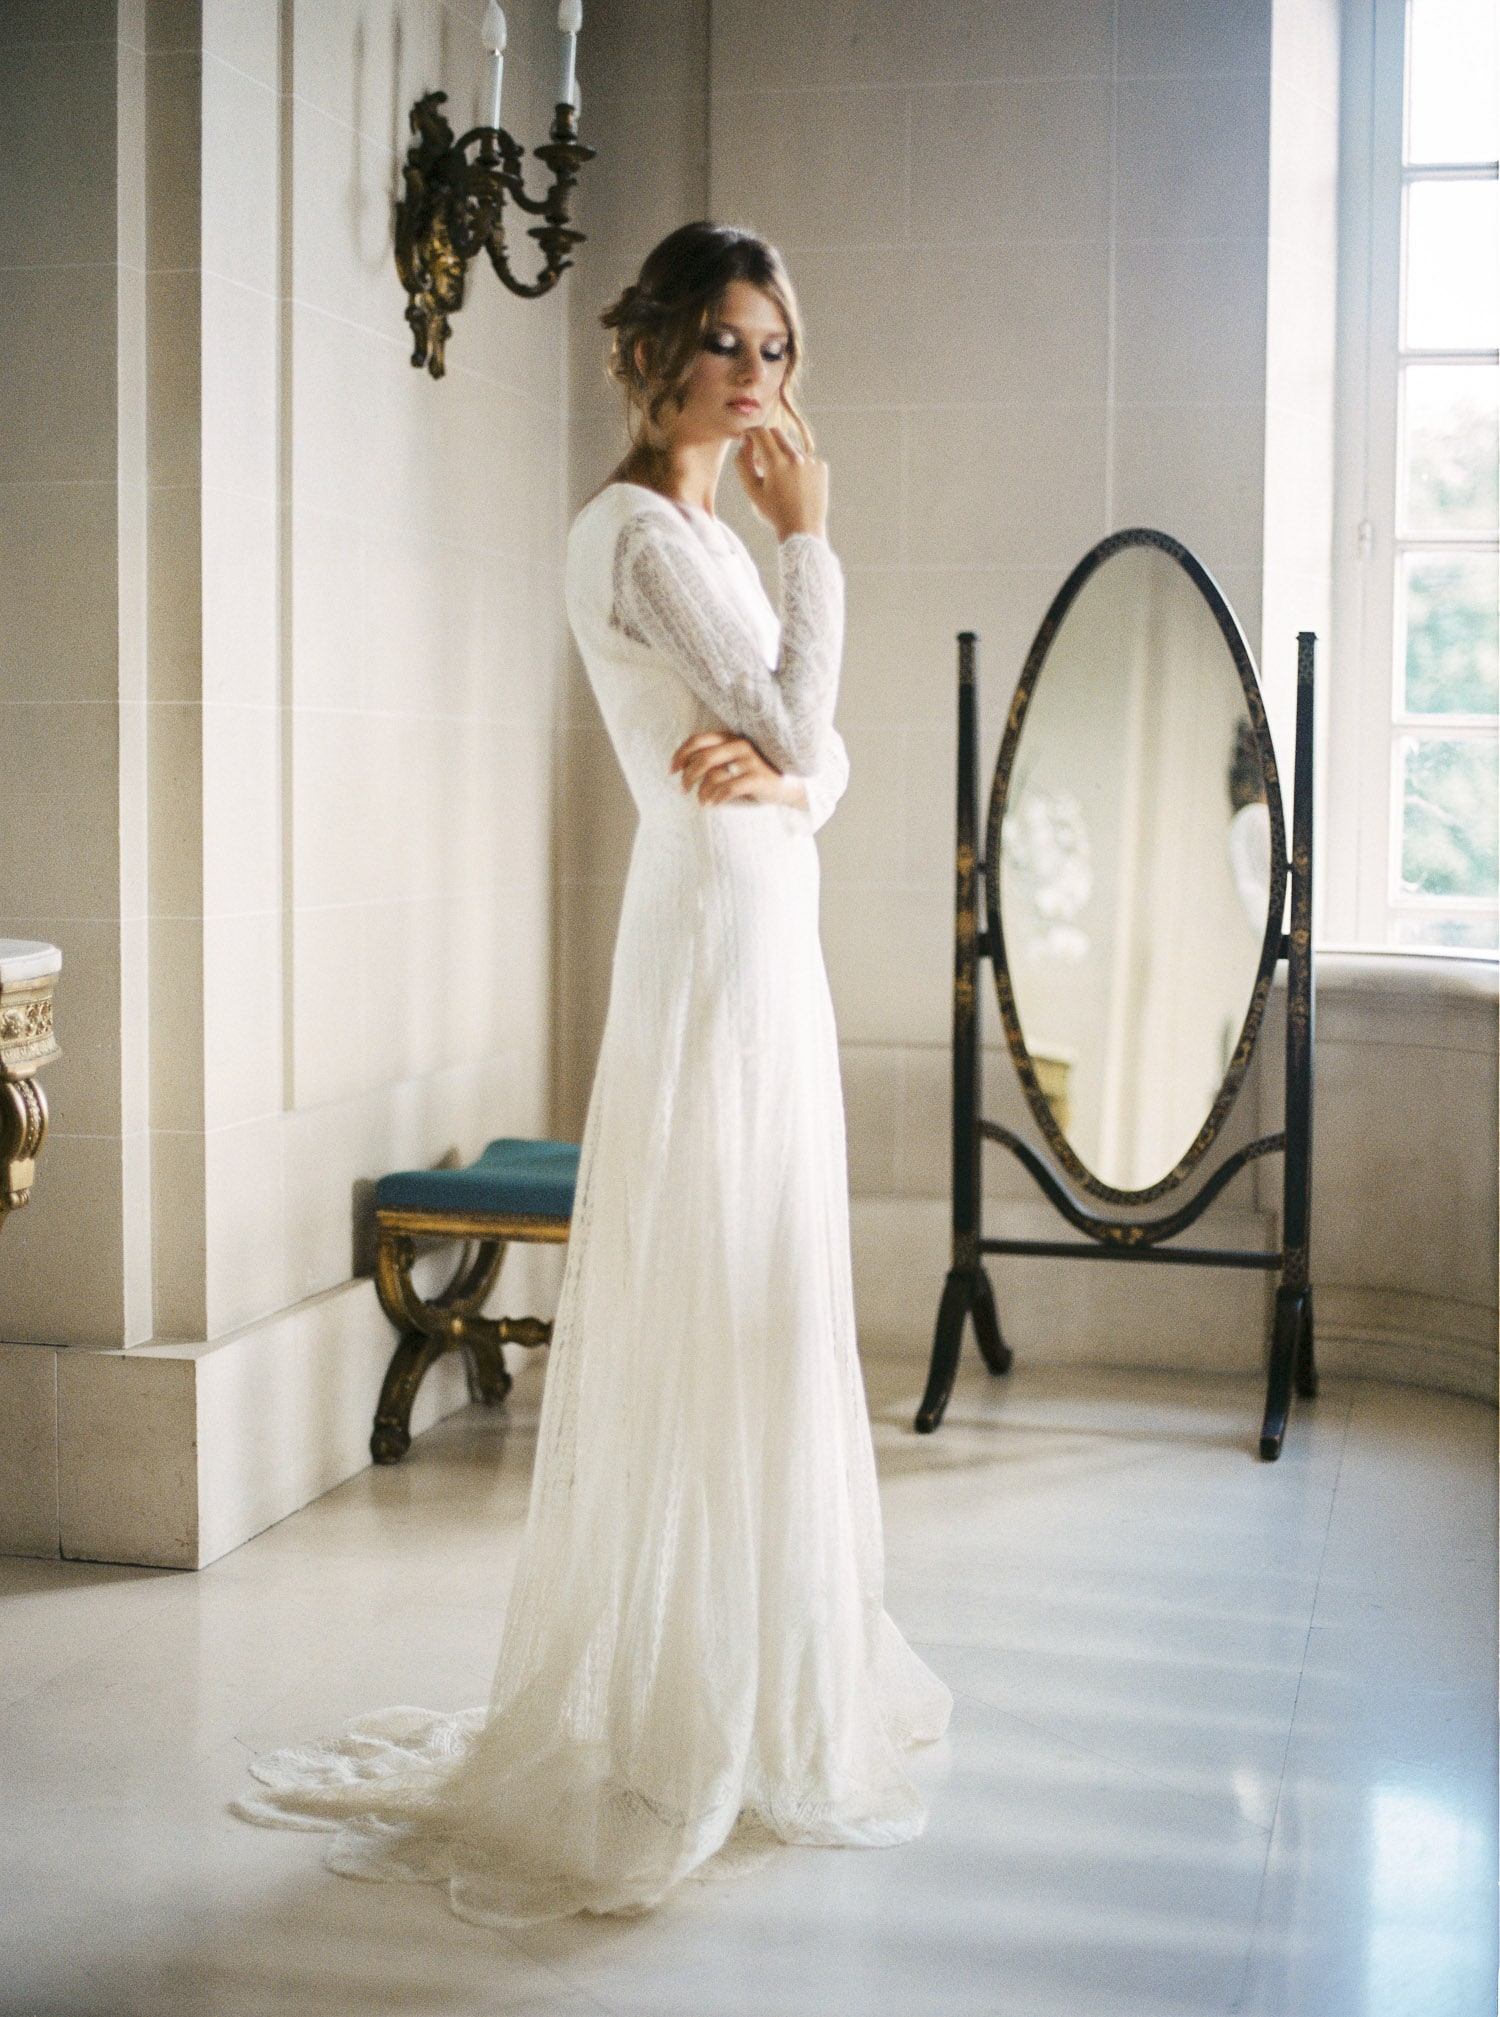 Constance Fournier, wedding dress, bride, romantic luxury wedding, chateau d'artigny, wedding designer, Veronique Lorre